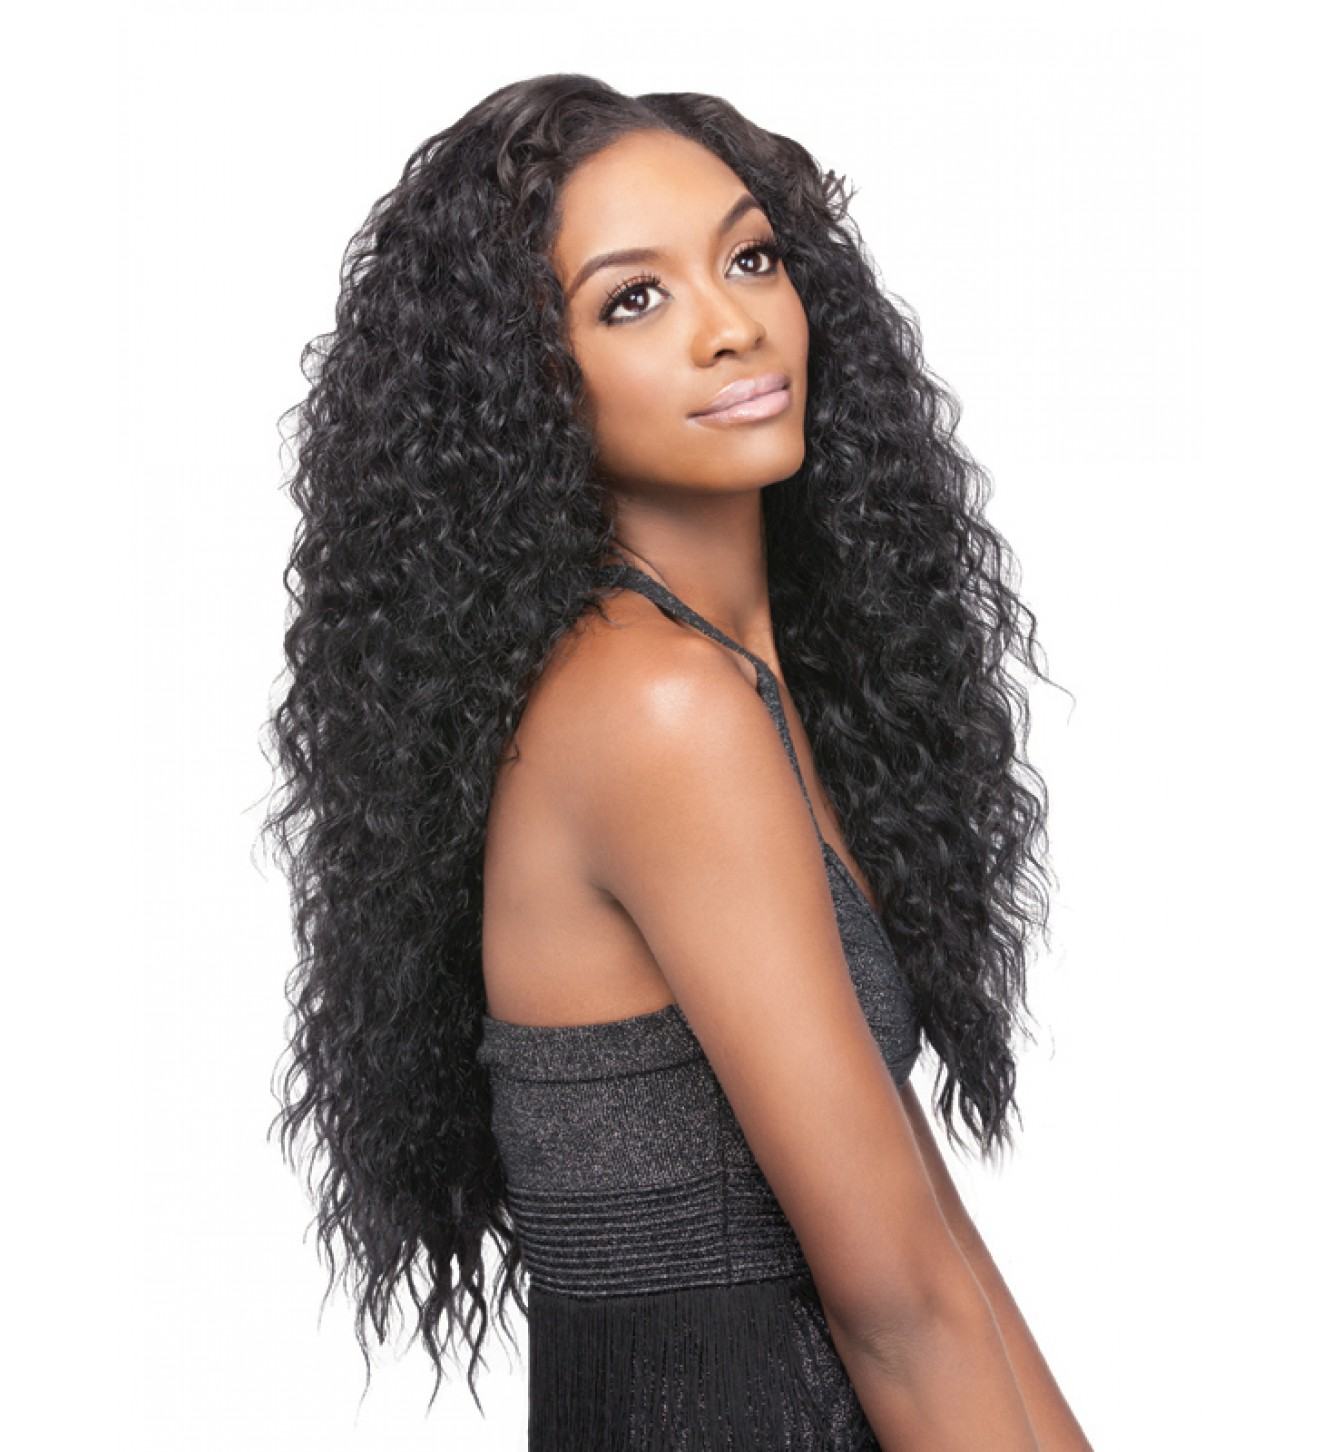 Brazilian Remy Hair The Curly Look Chocolate Informed